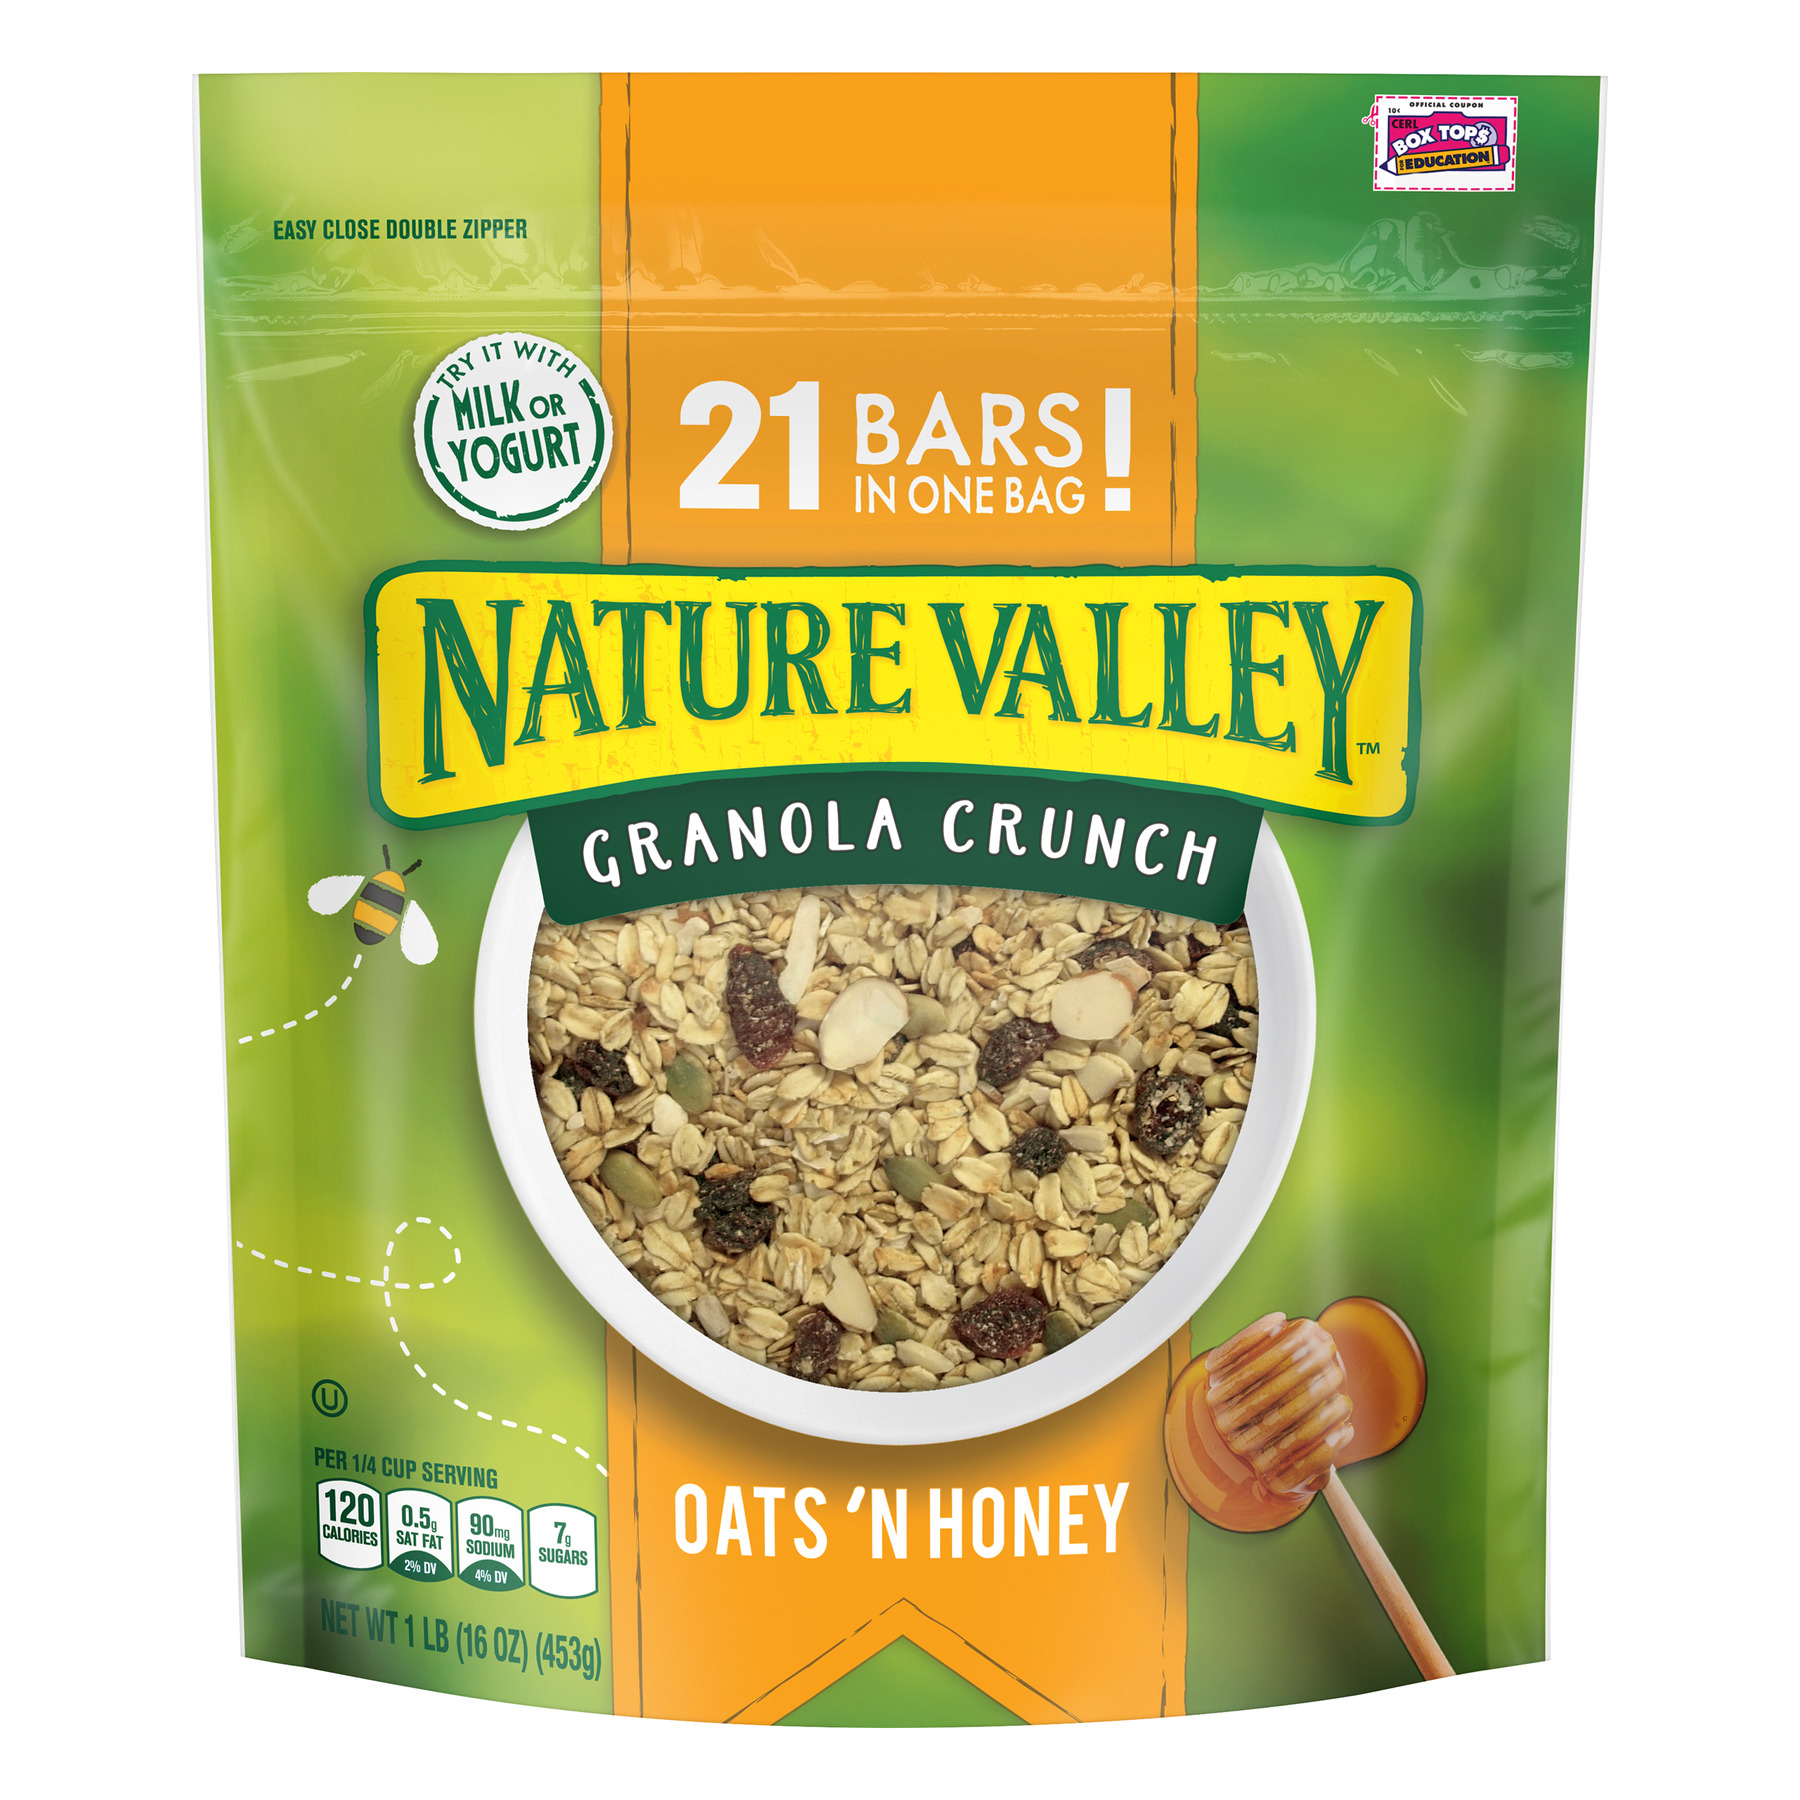 (2 Pack) Nature Valley Granola Crunch, Clusters, Oats 'n Honey, 16 oz